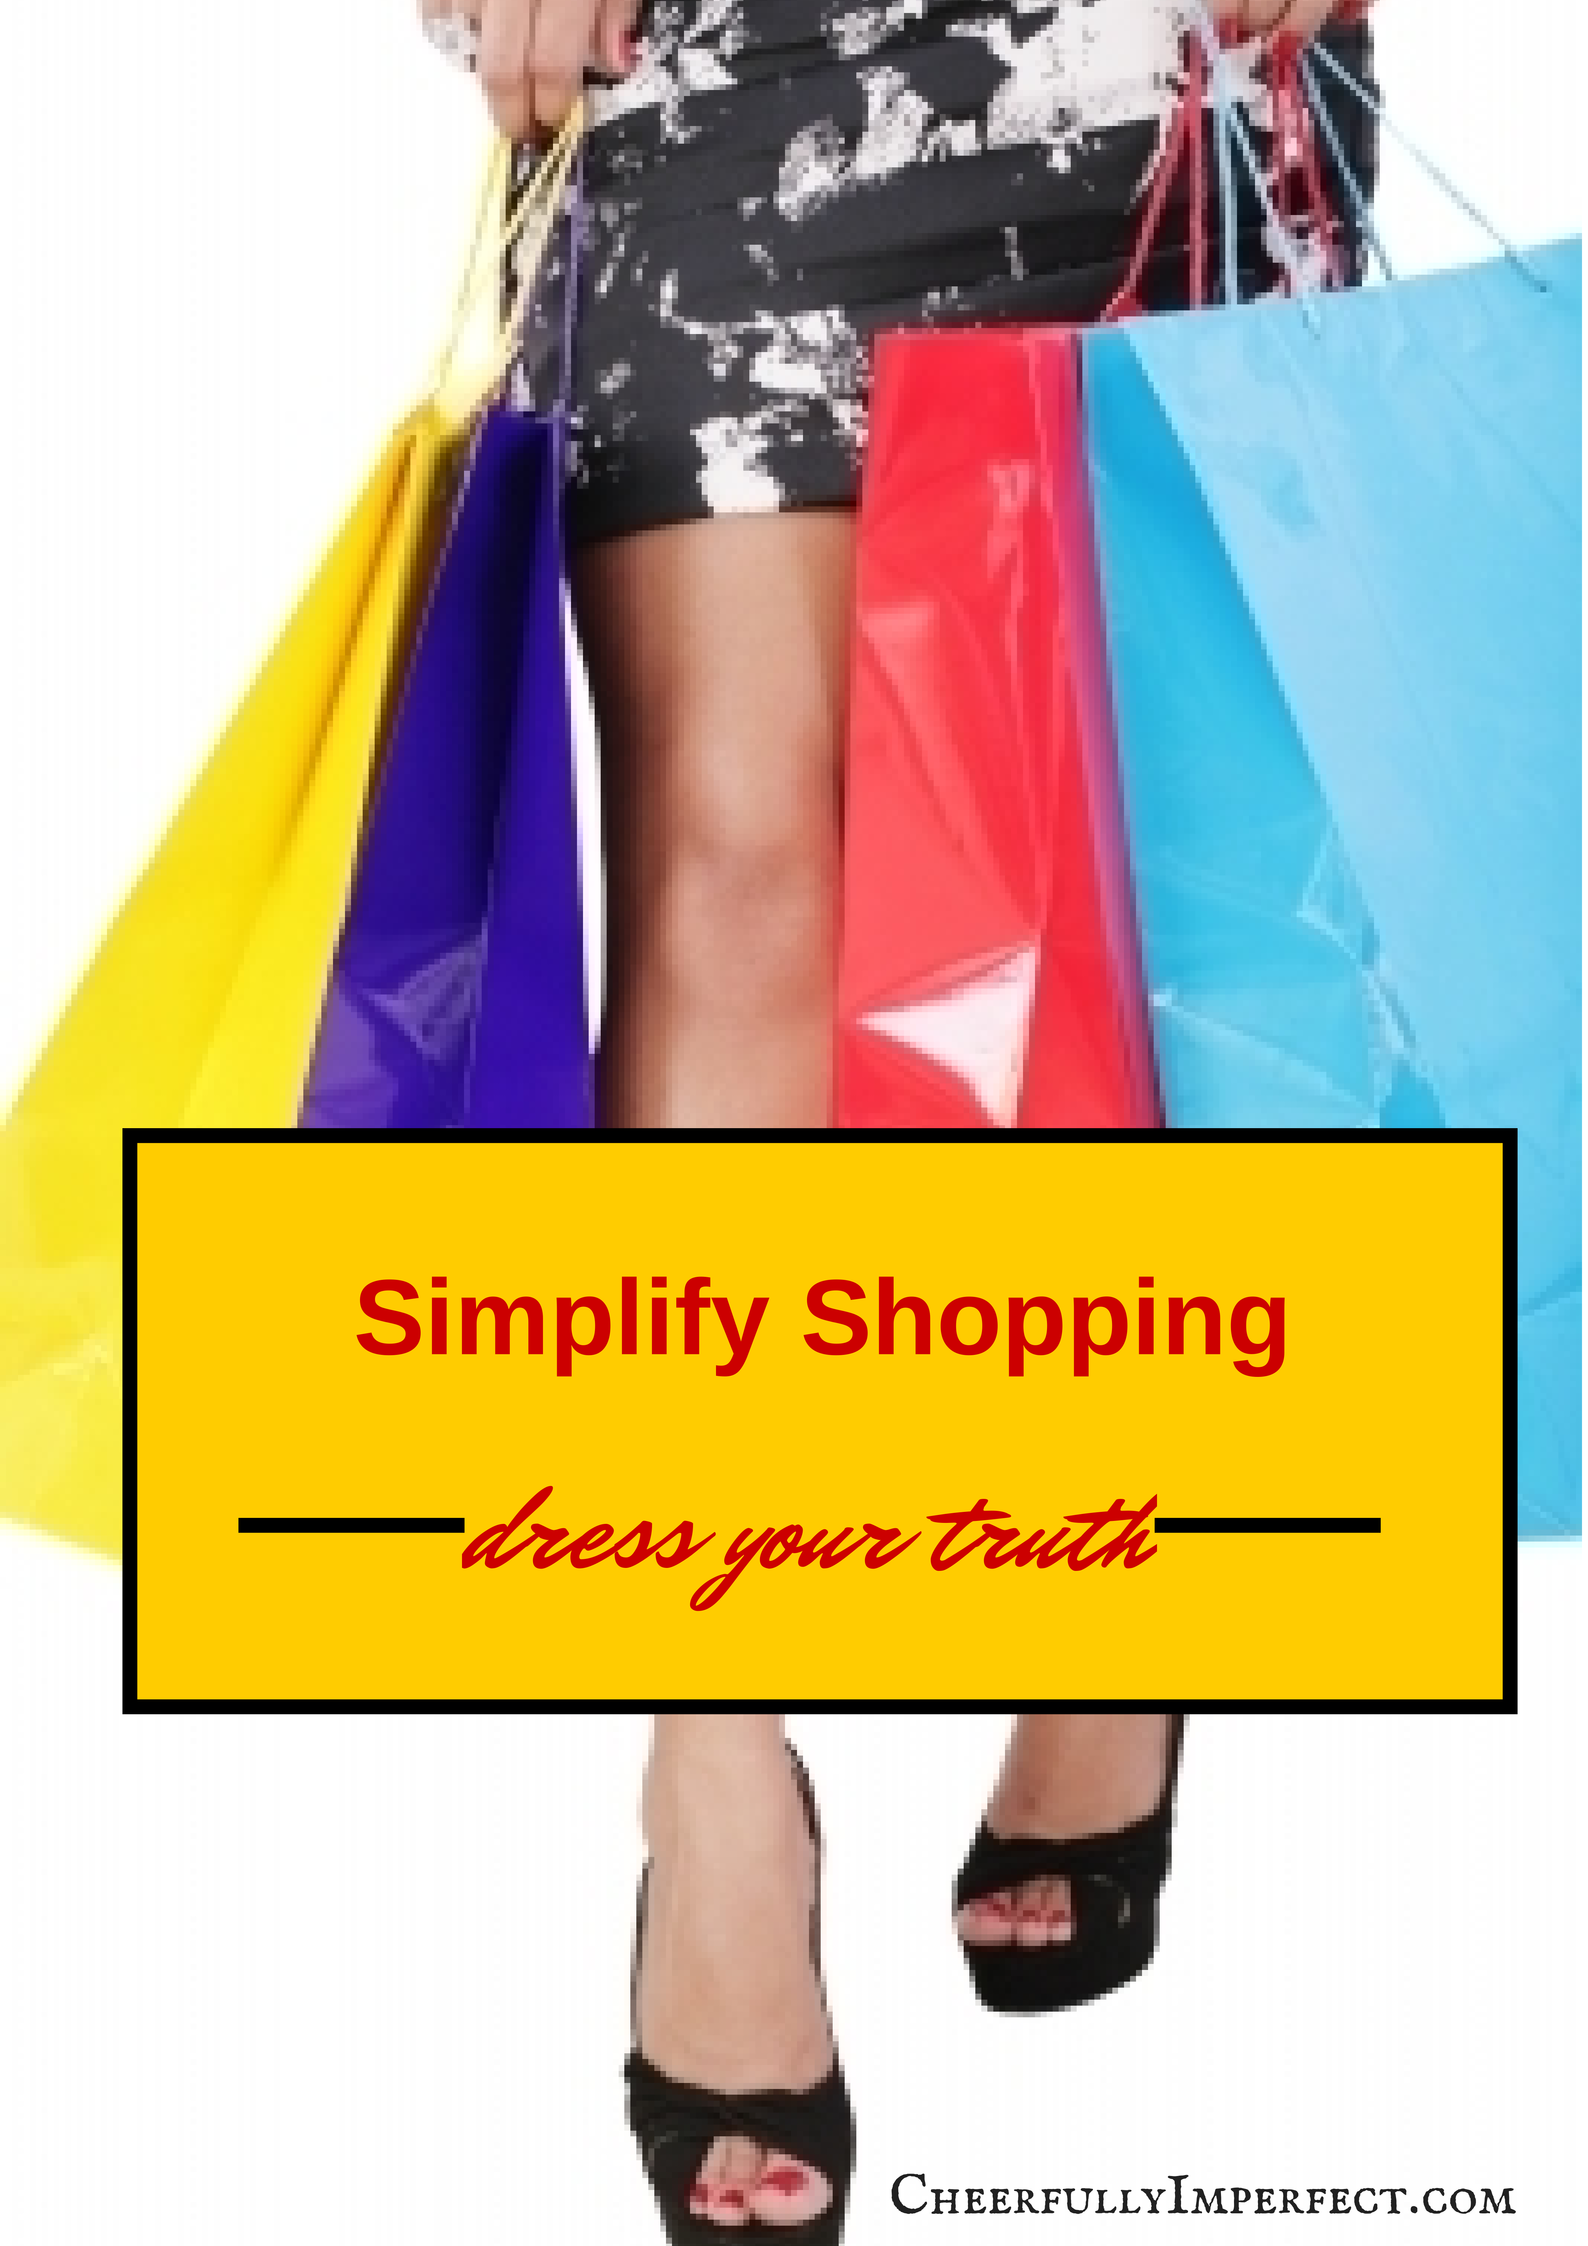 Simplify shopping - dress your truth